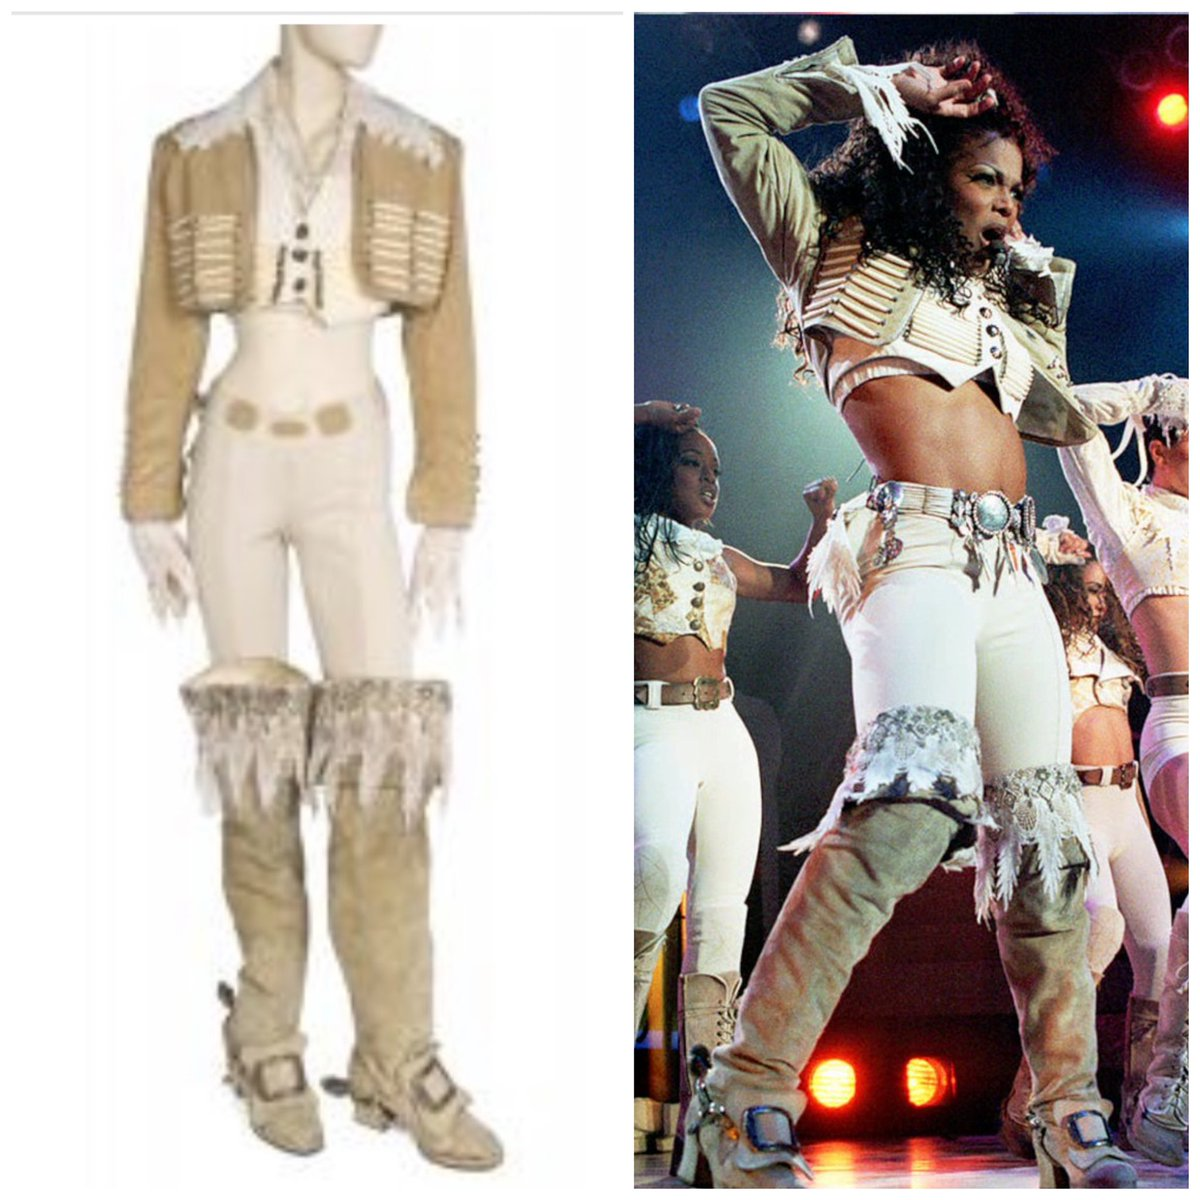 janet-jackson-janet-world-tour-outfit-sold-for-25600-the-julien-auction